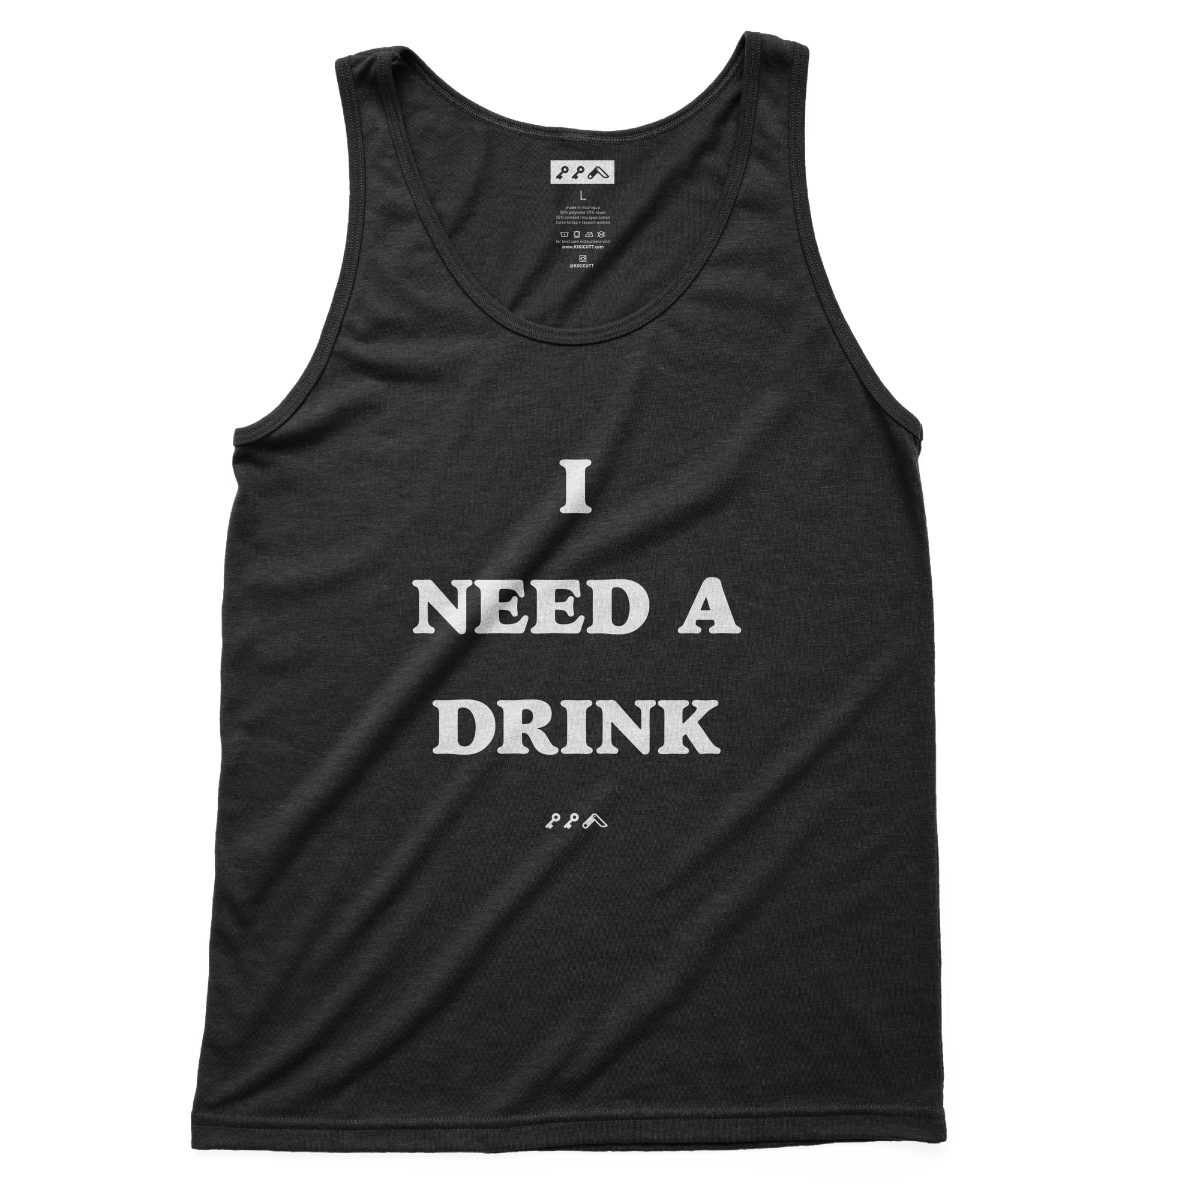 I NEED A DRINK funny sunday funday drinking tank top in black